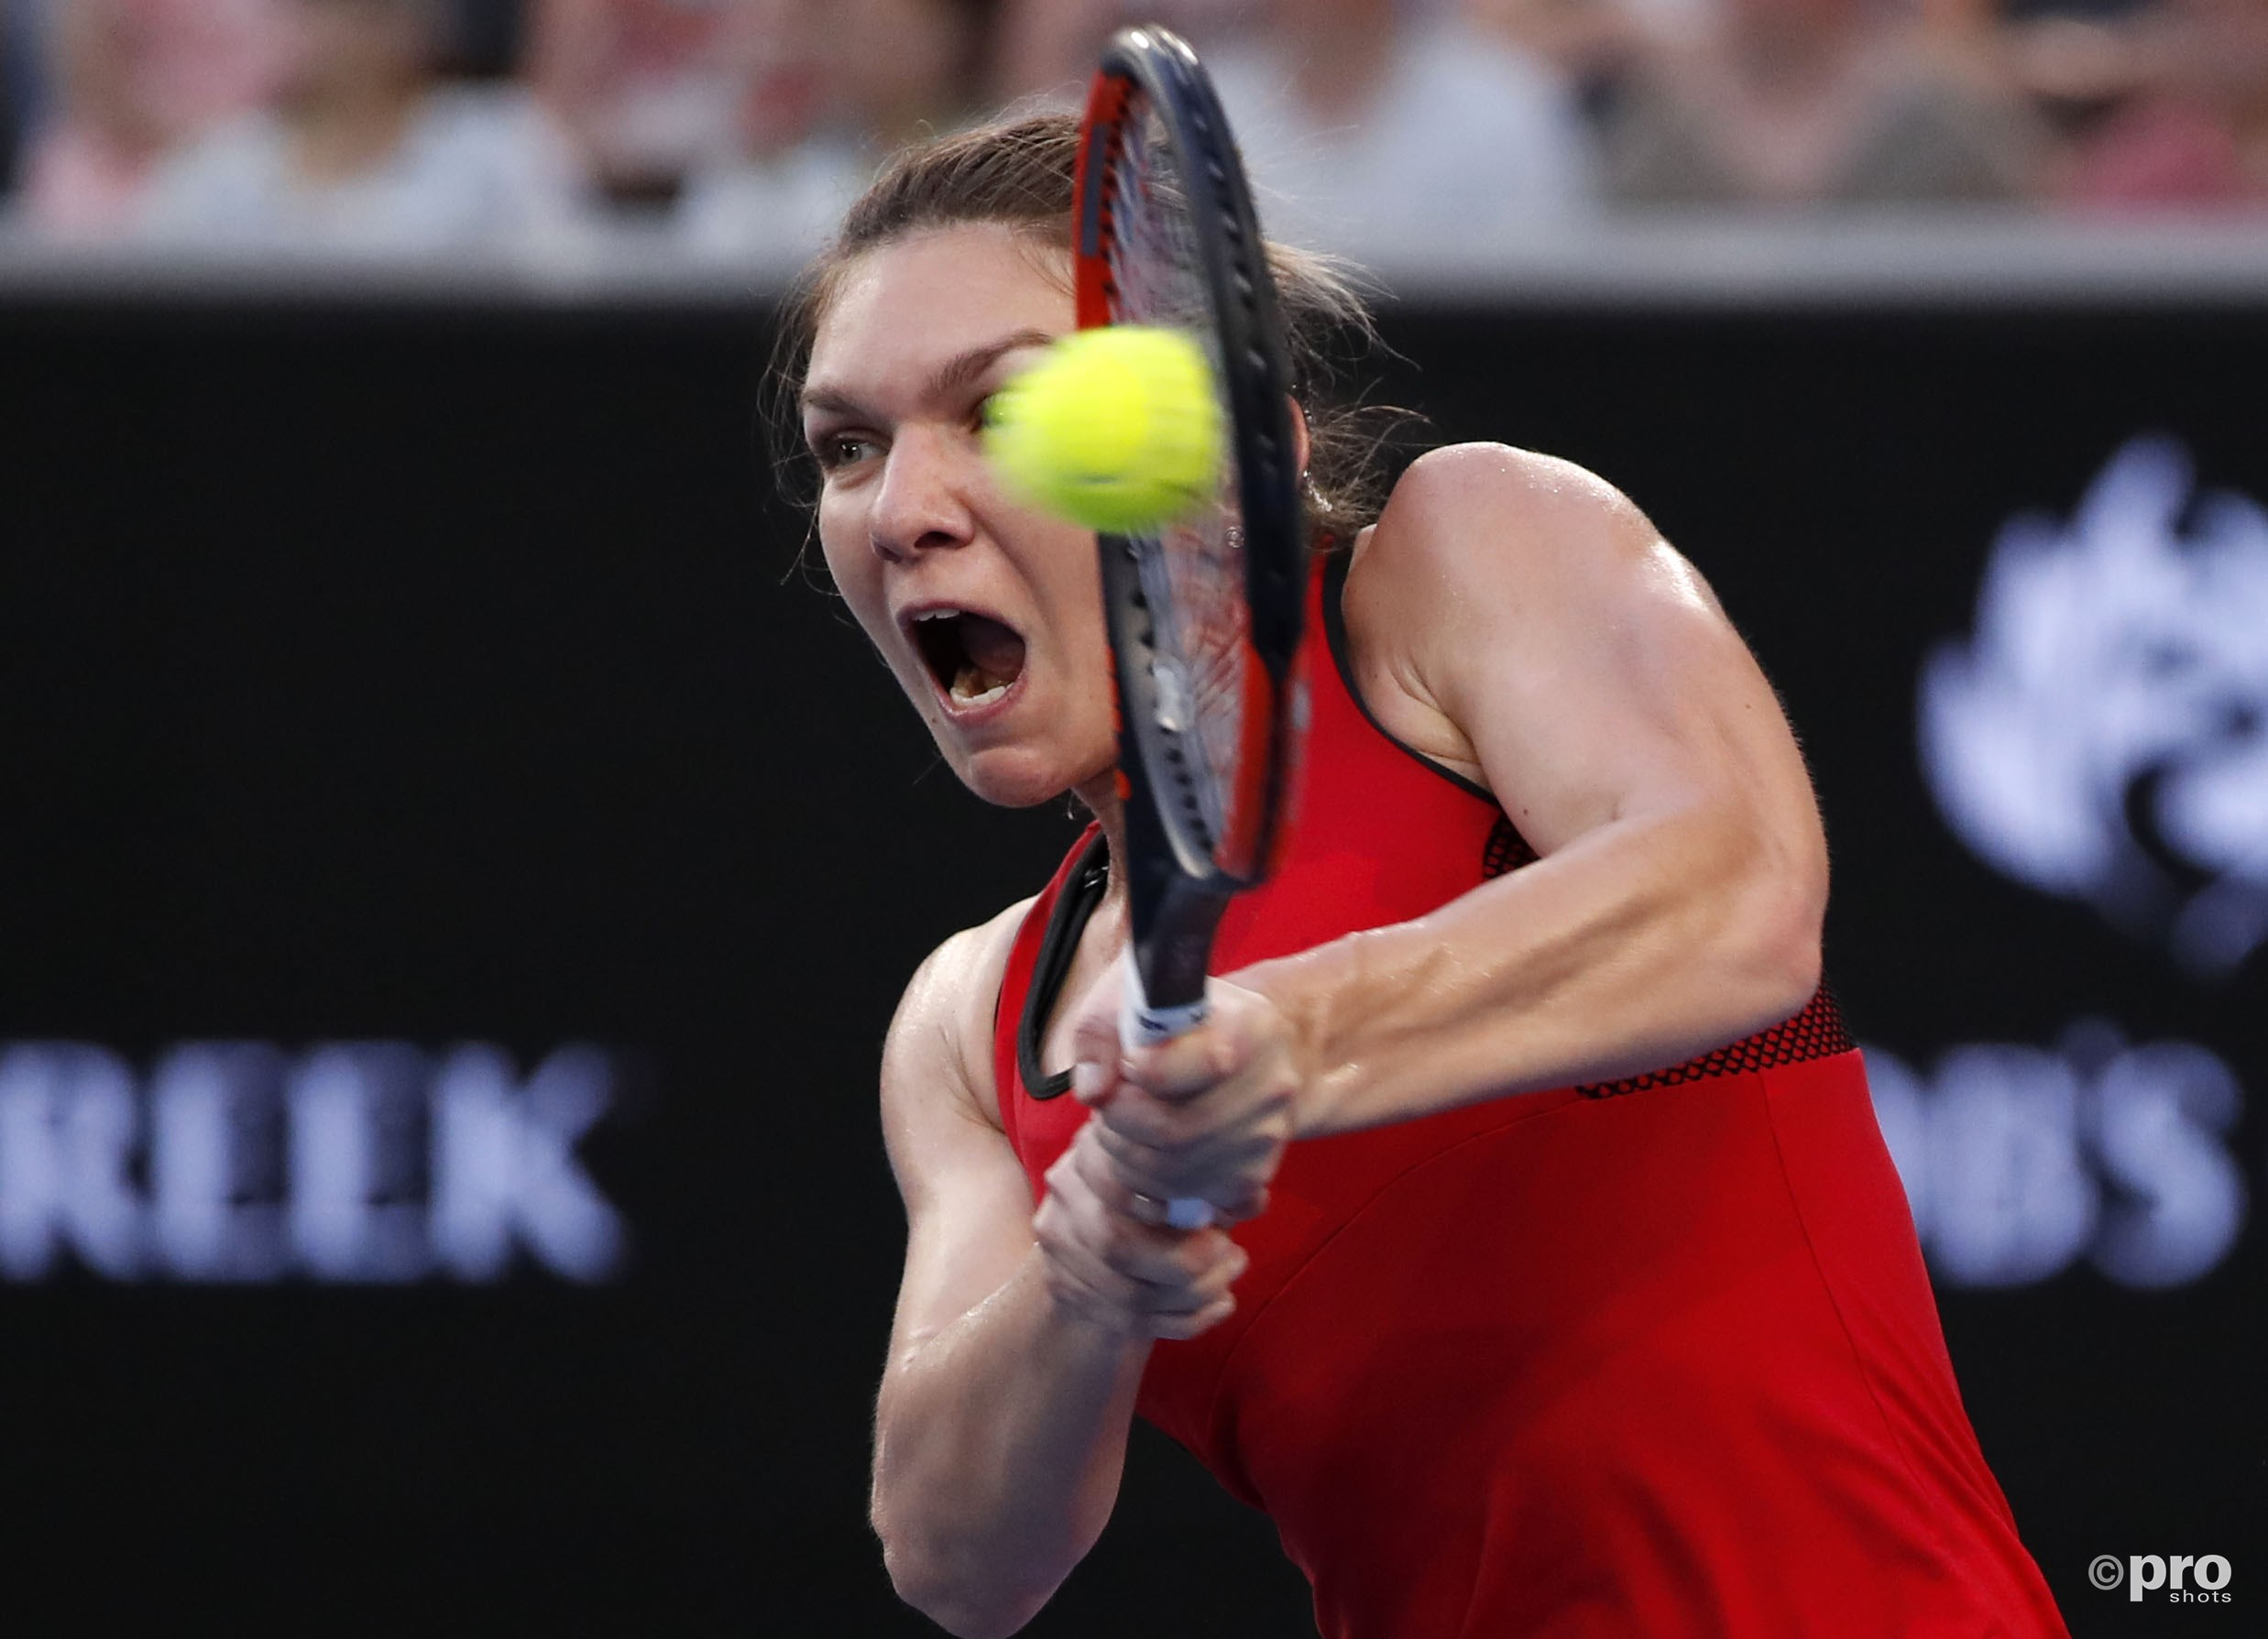 Halep ramt een bal richting Bouchard (Pro Shots/Action Images)